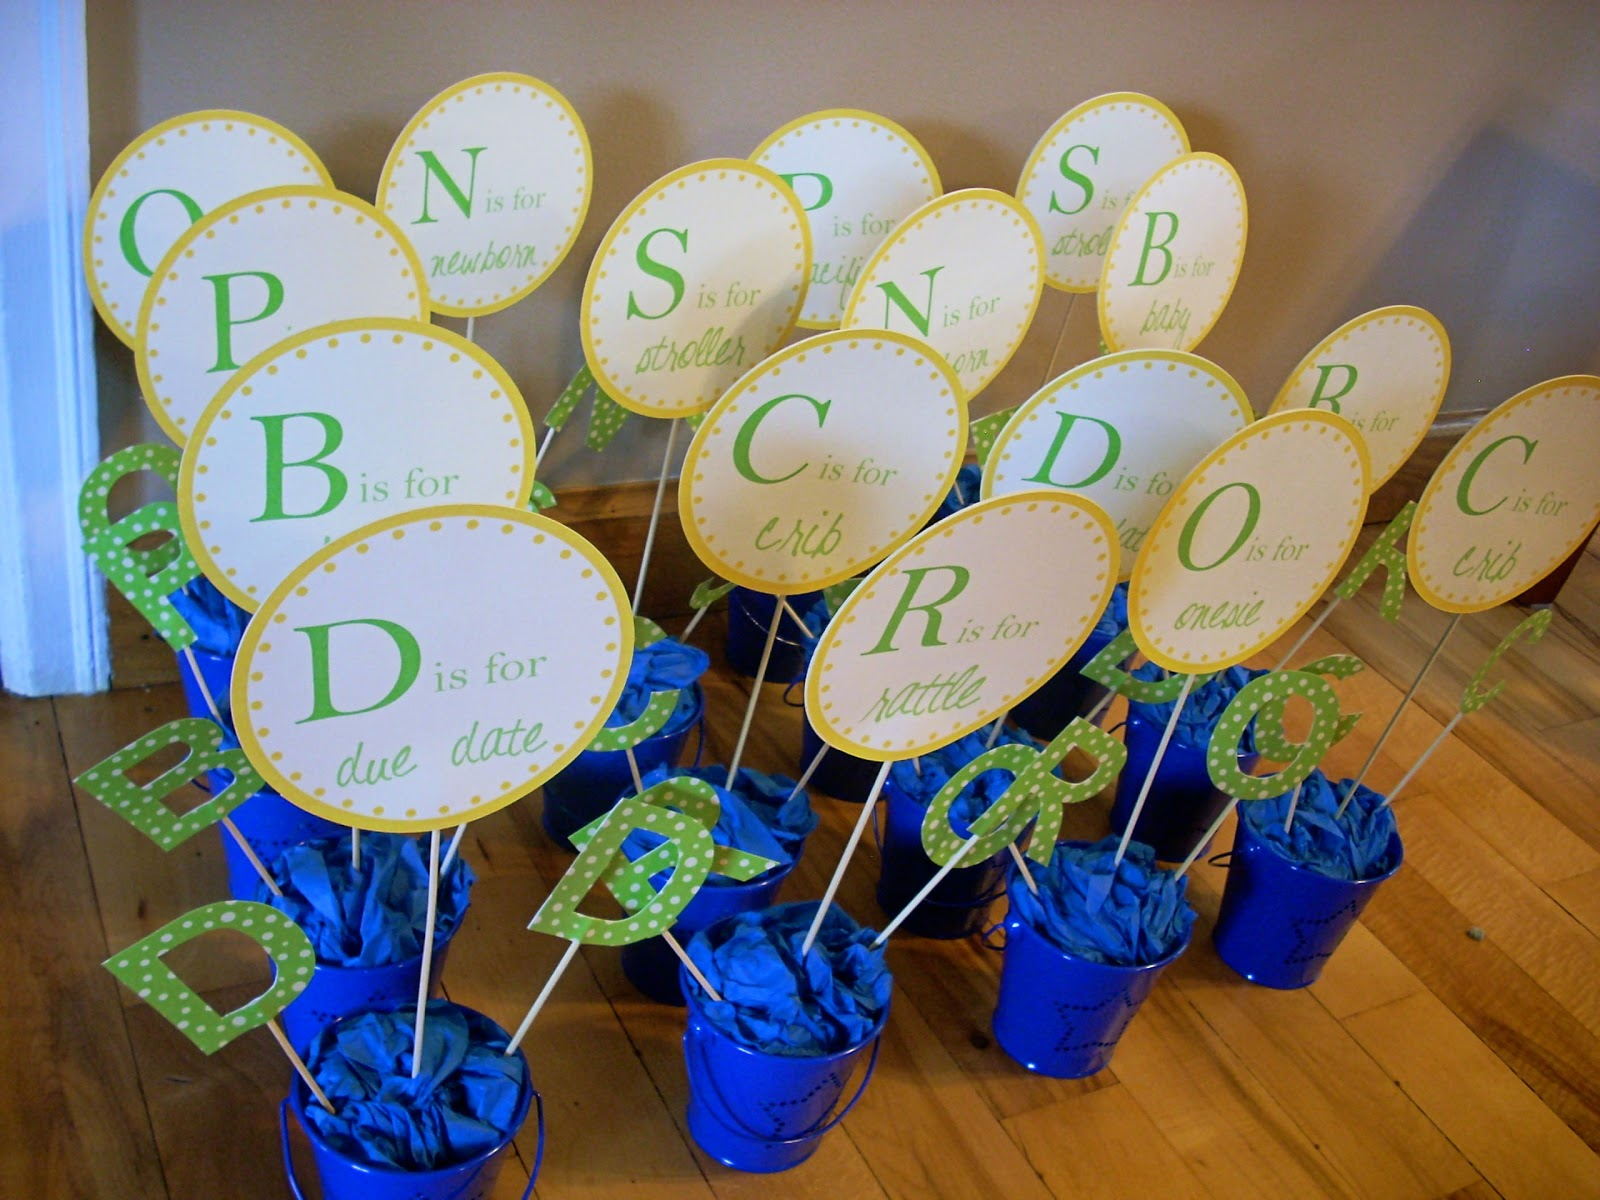 Alphabet Baby Shower: DIY Centerpieces |The Domestic Domicile